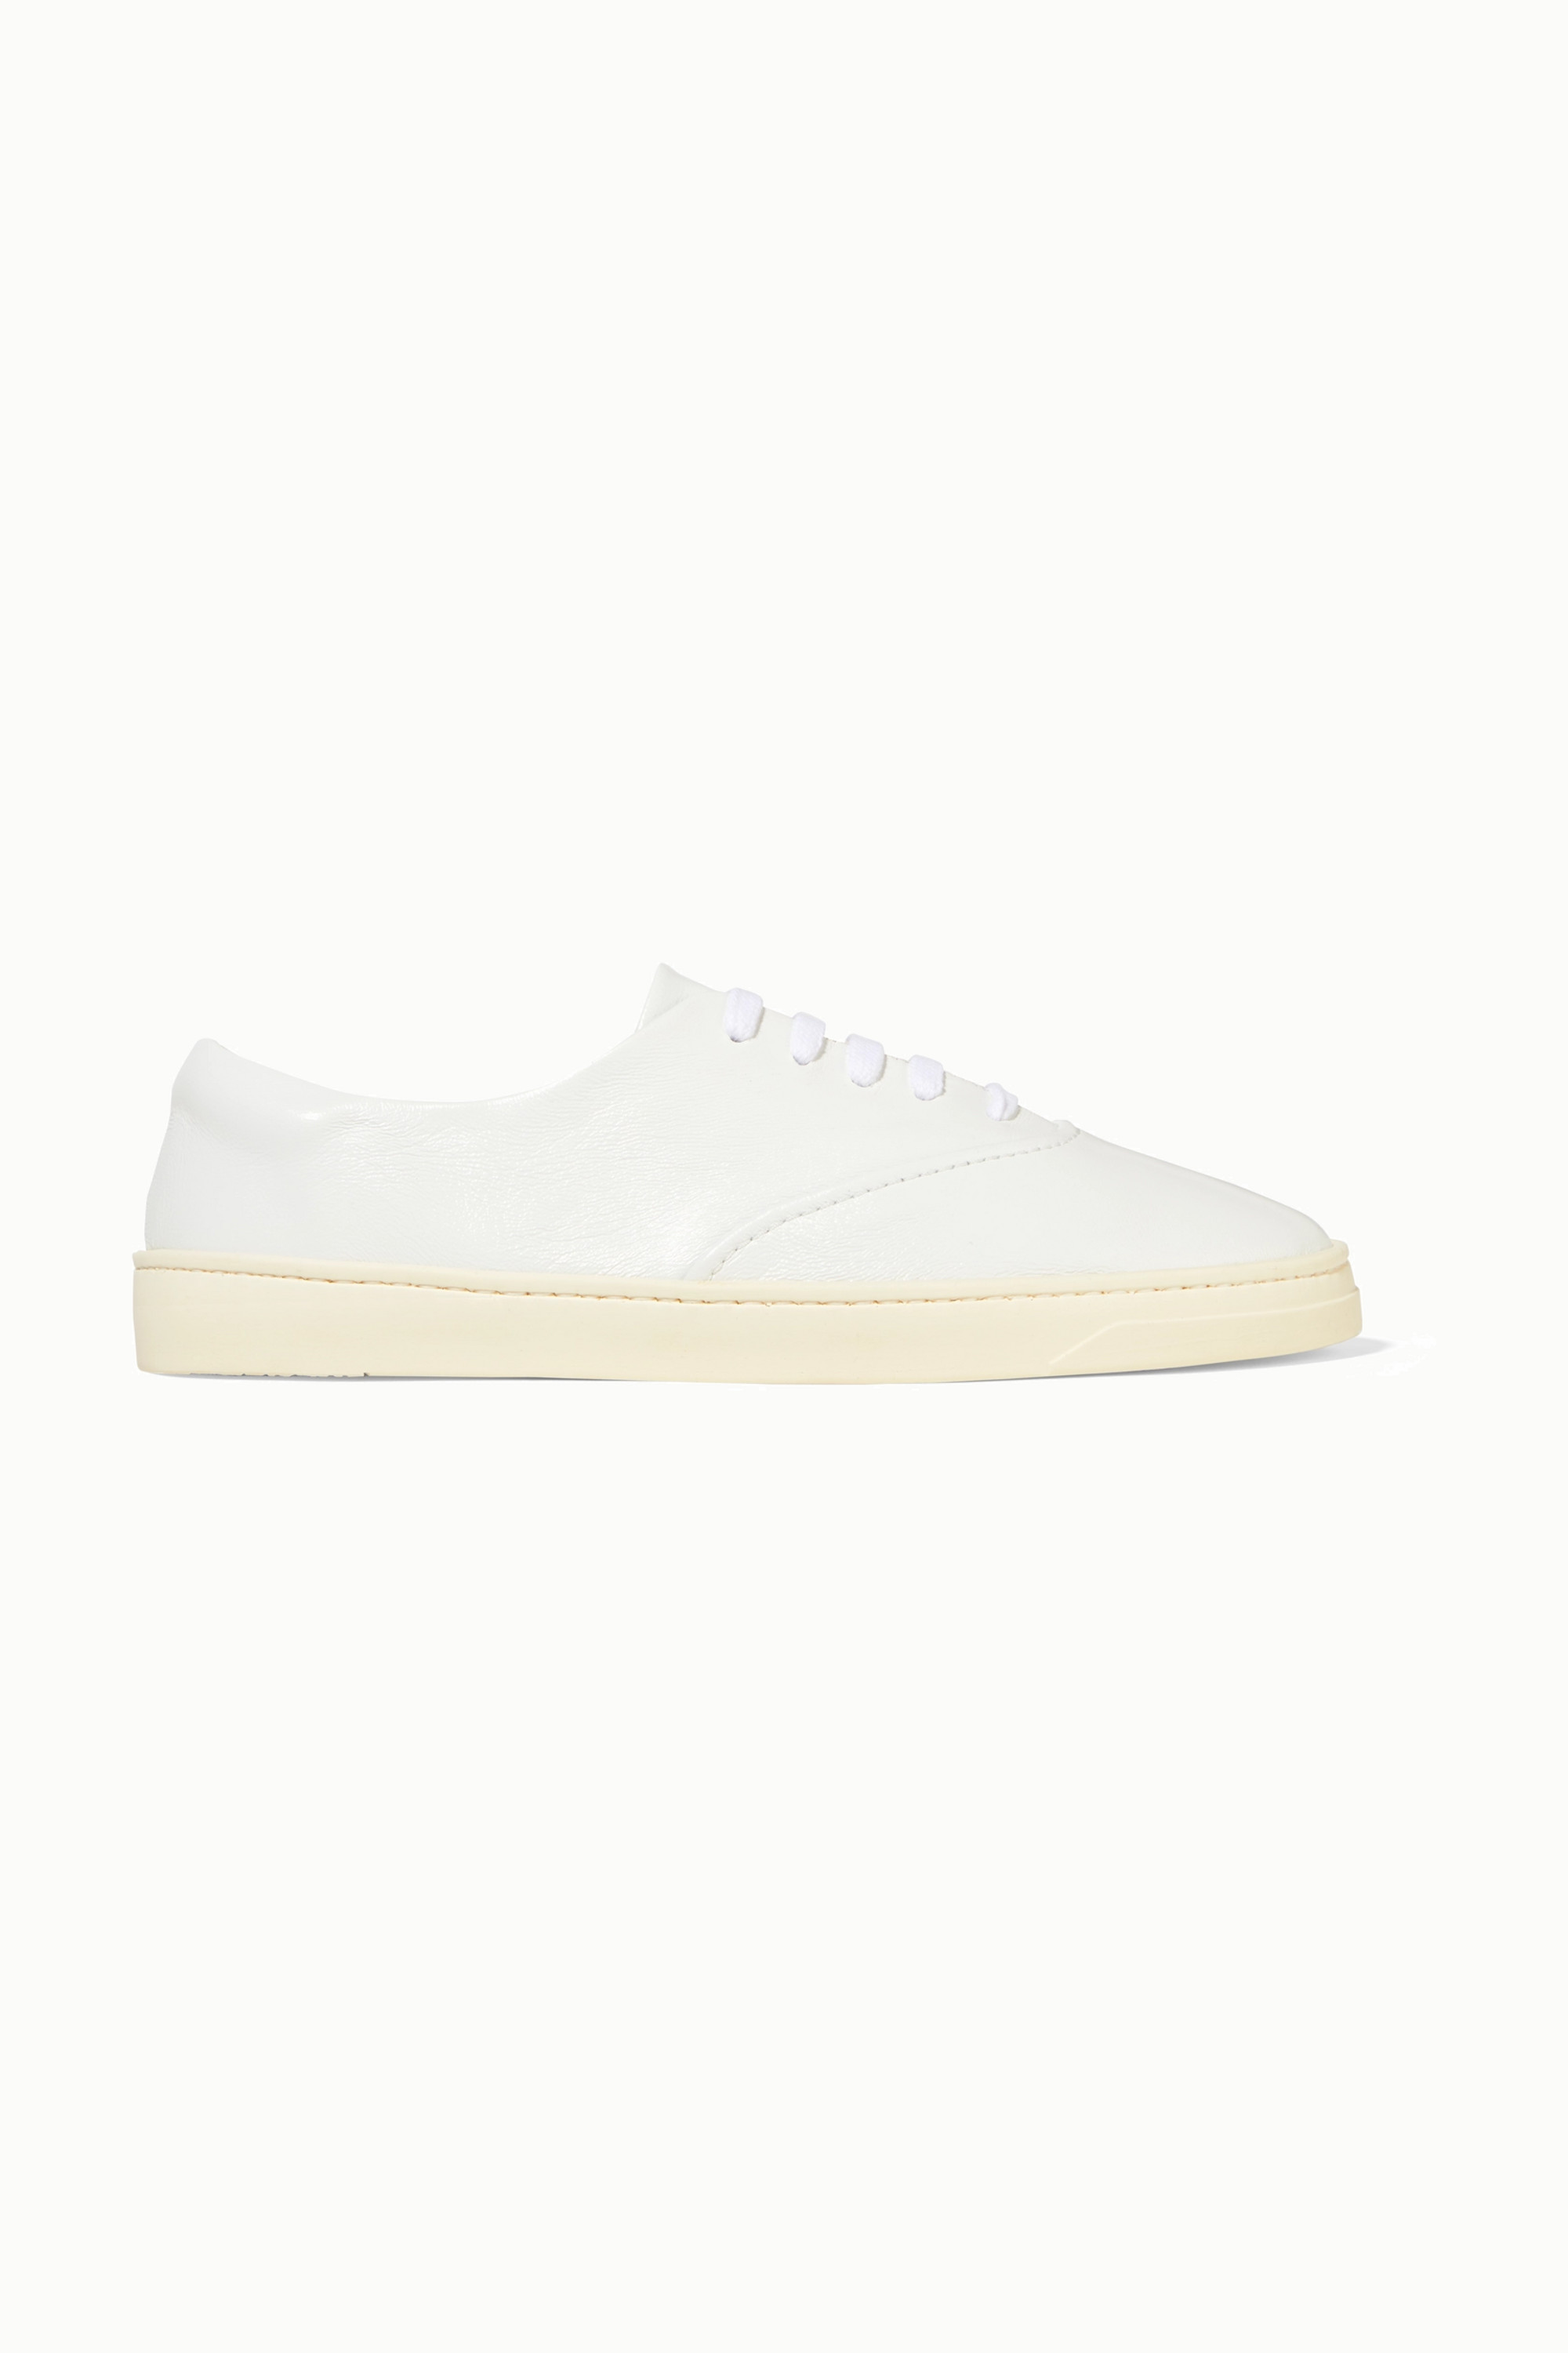 Gabriela Hearst Marcello leather sneakers